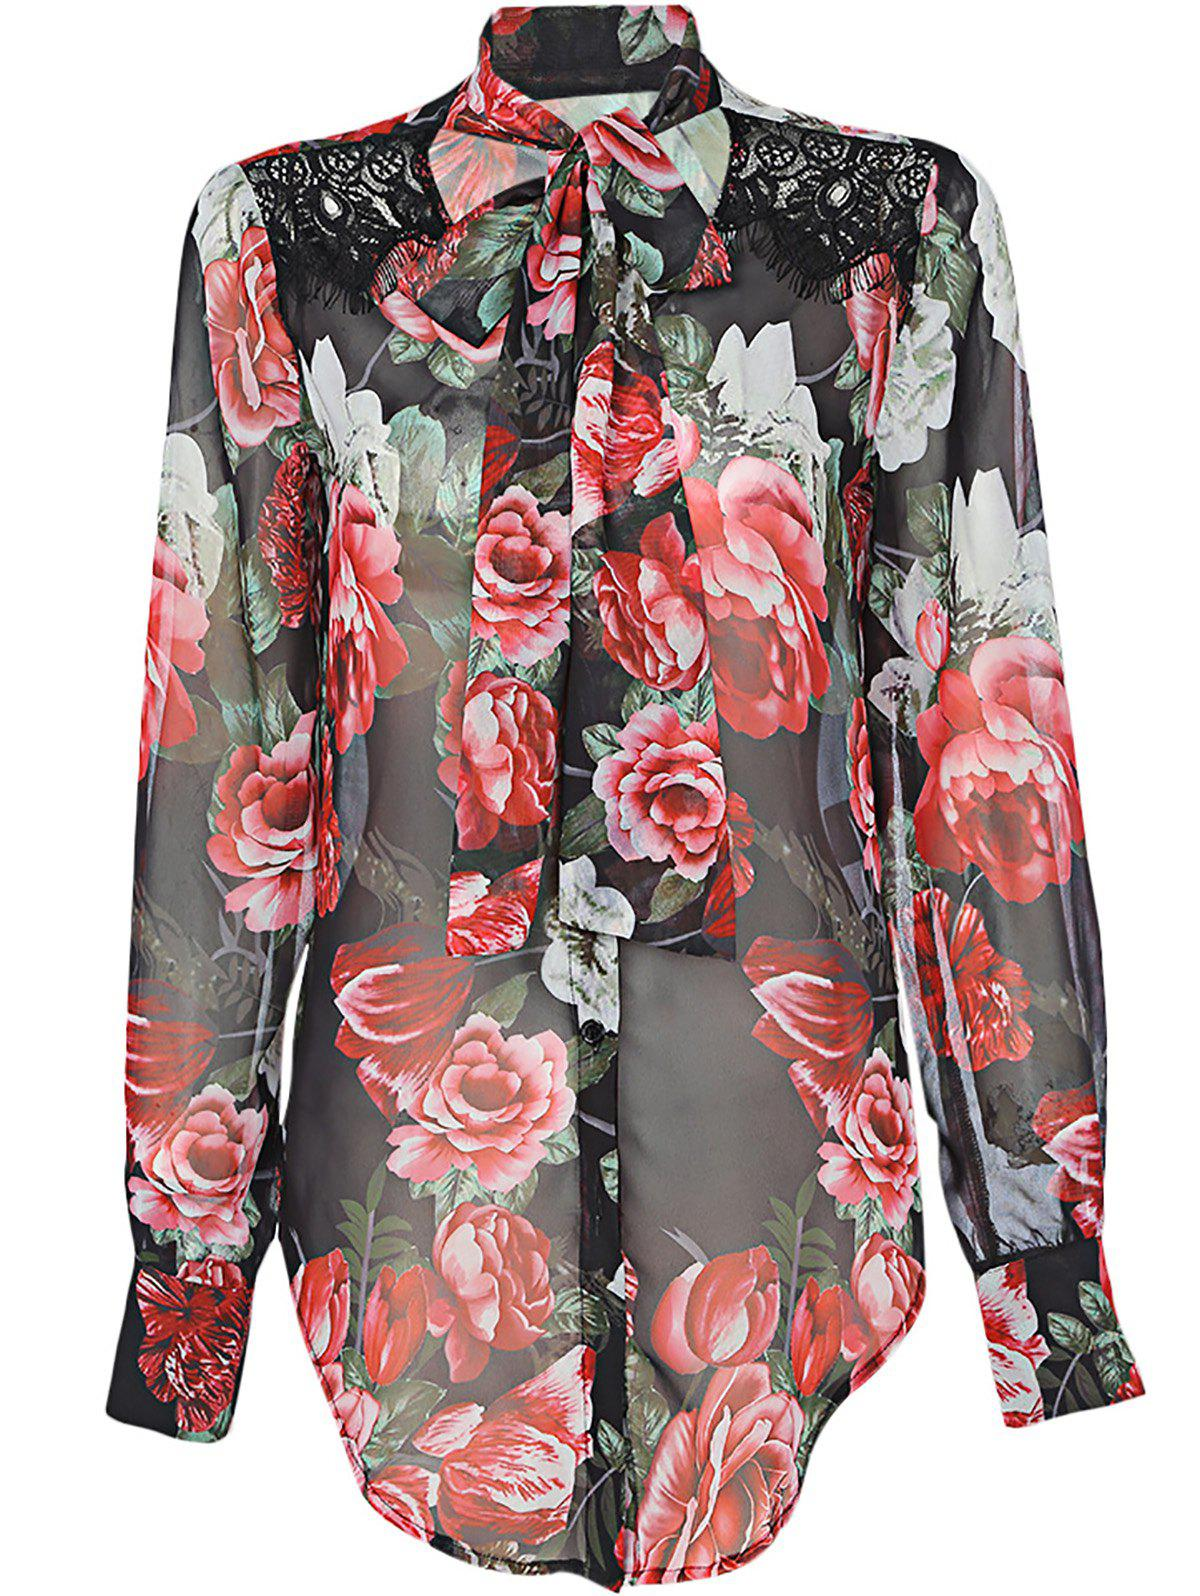 Trendy V Neck Vintage Style Printed Floral Lacing Shirt for Women - BLACK / ROSE M